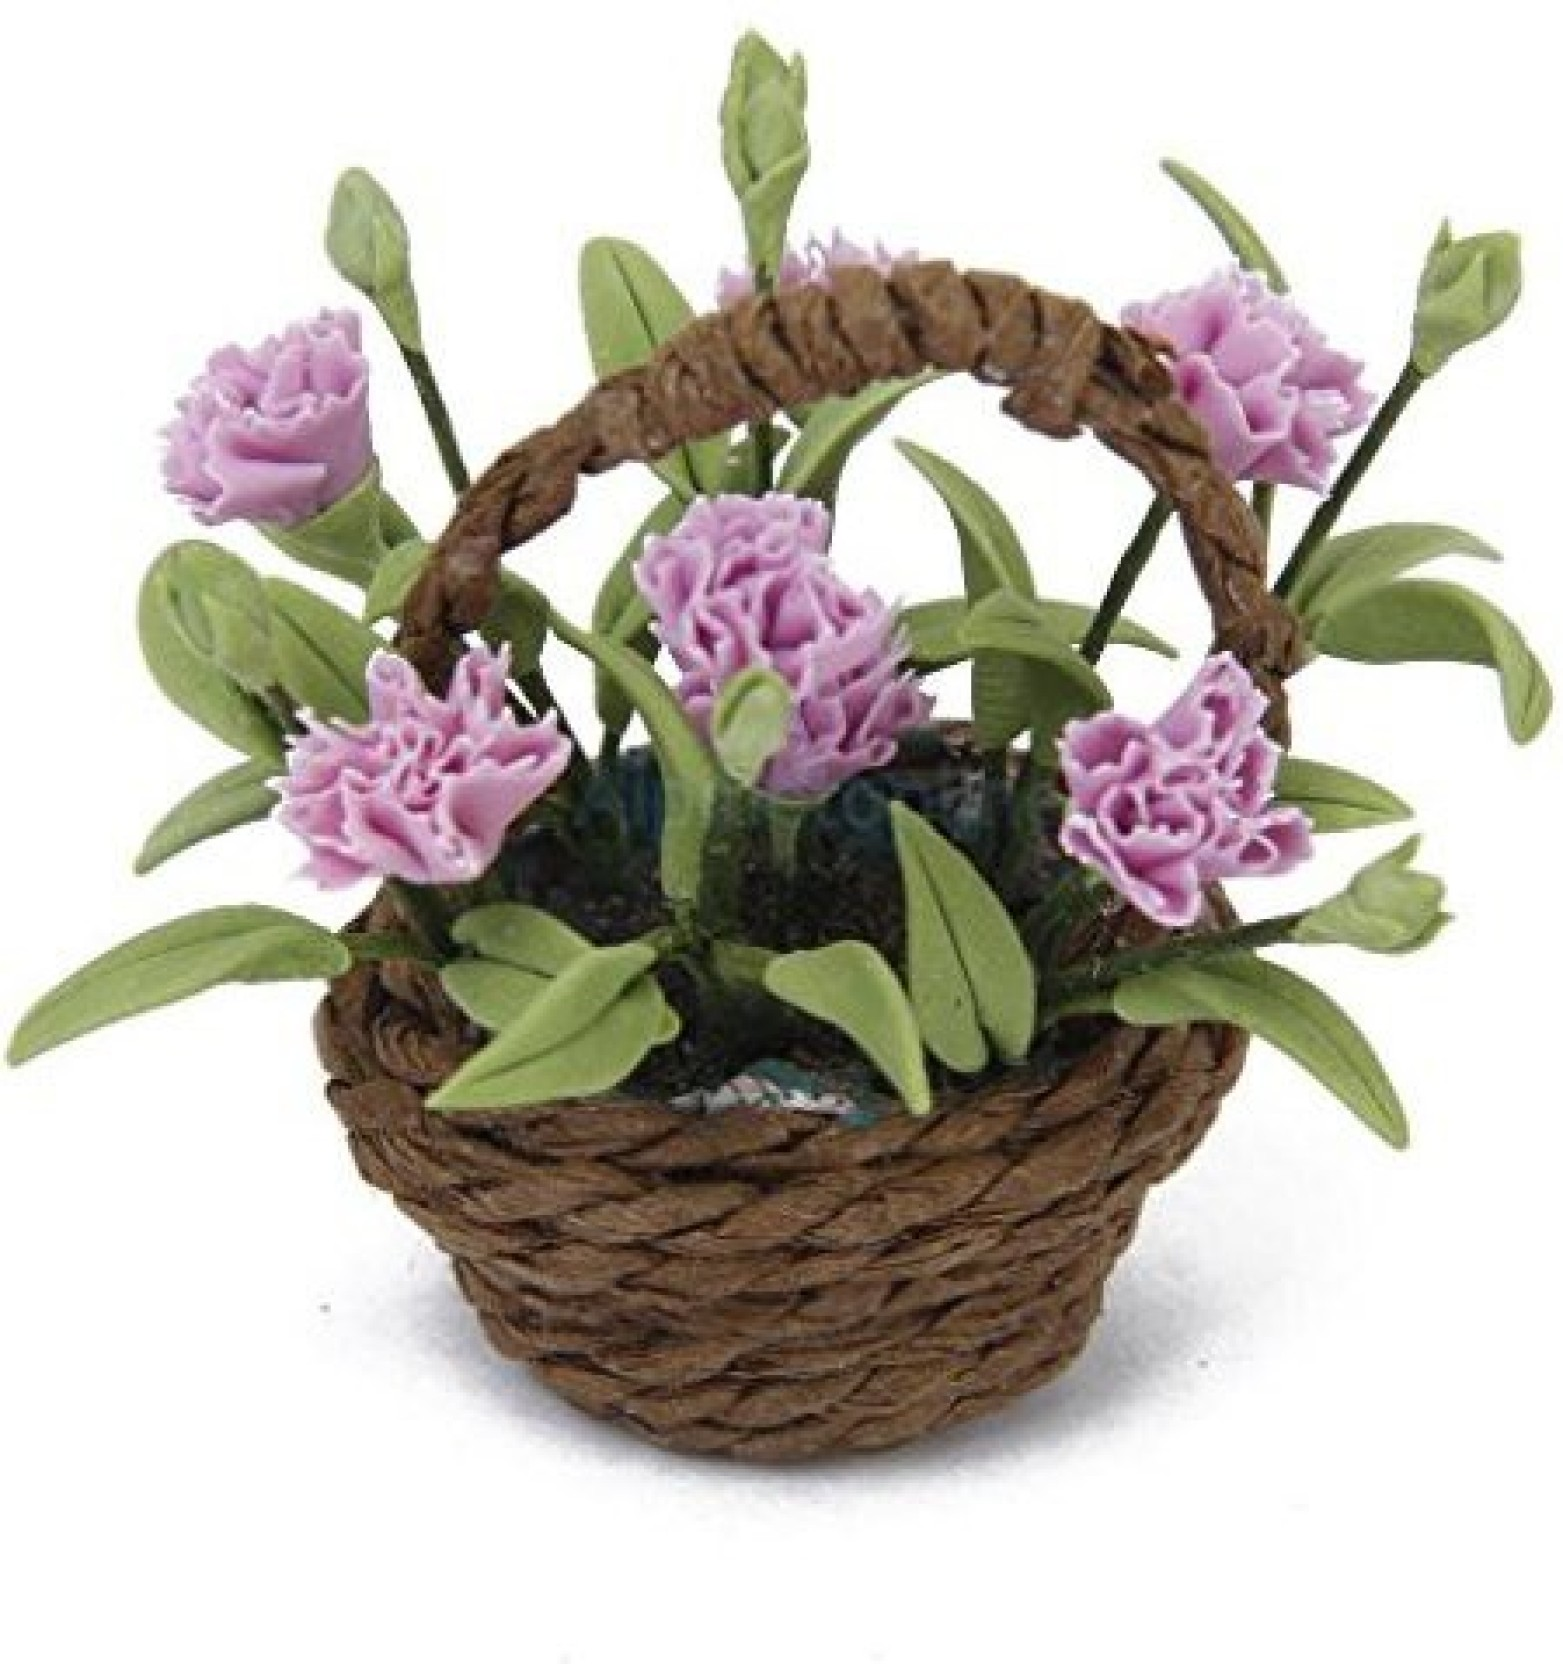 1:12 Miniature Dollhouse Pink Carnation Flower Plant Ornament Basket Decor